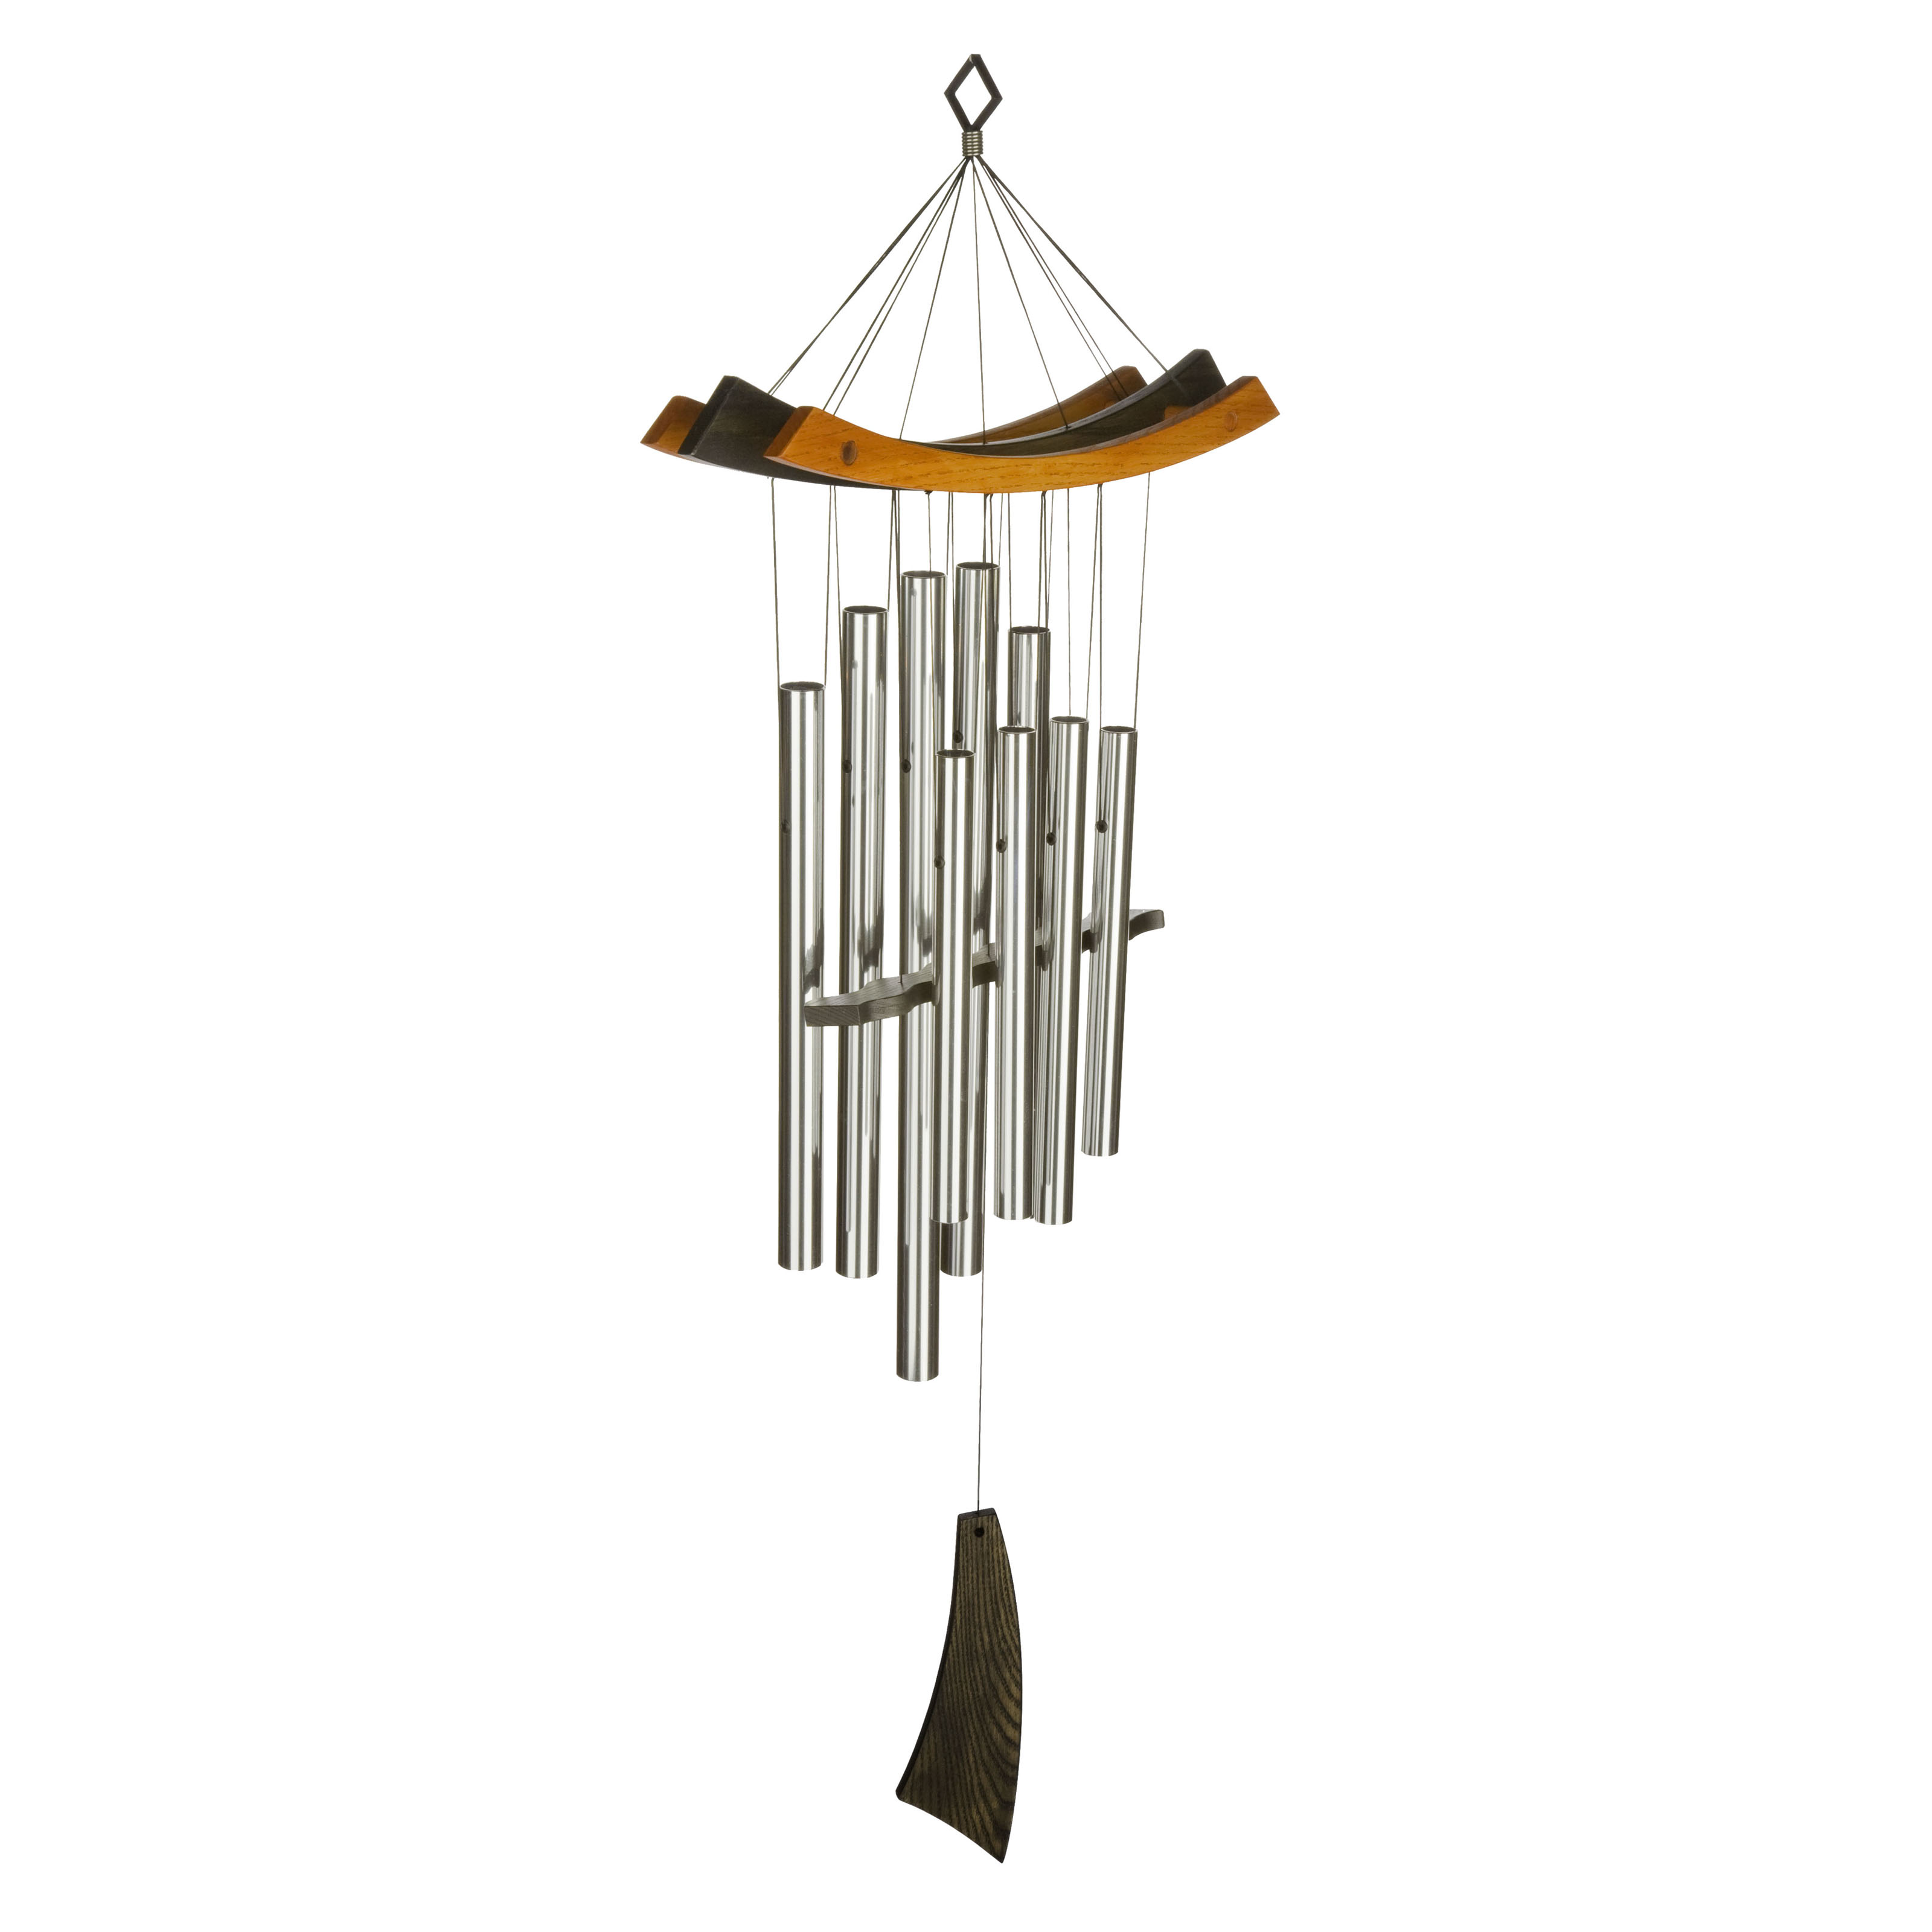 Woodstock Healing 34 Inch Wind Chime Wind Chimes At